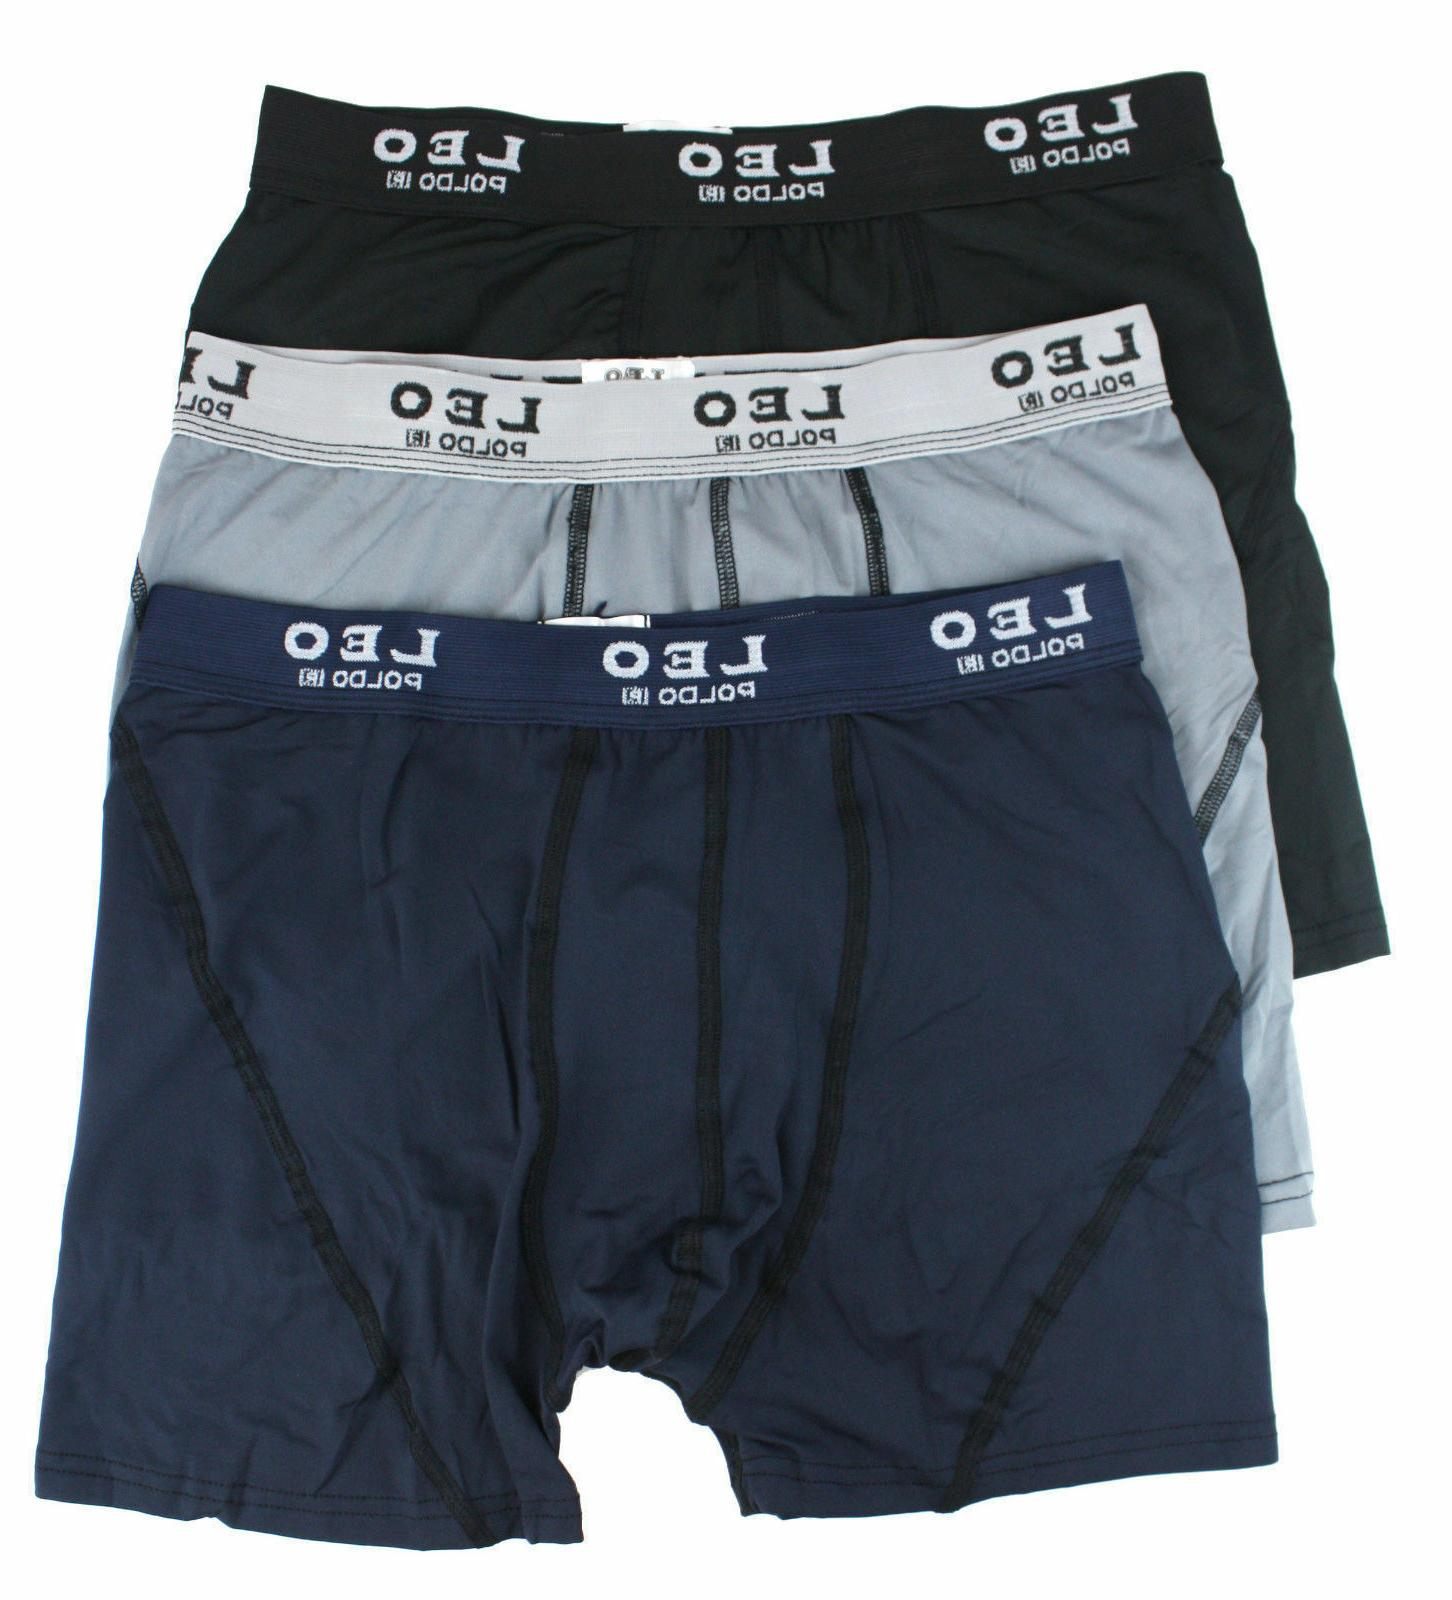 3 Underwear TAG Boxer with Comfort